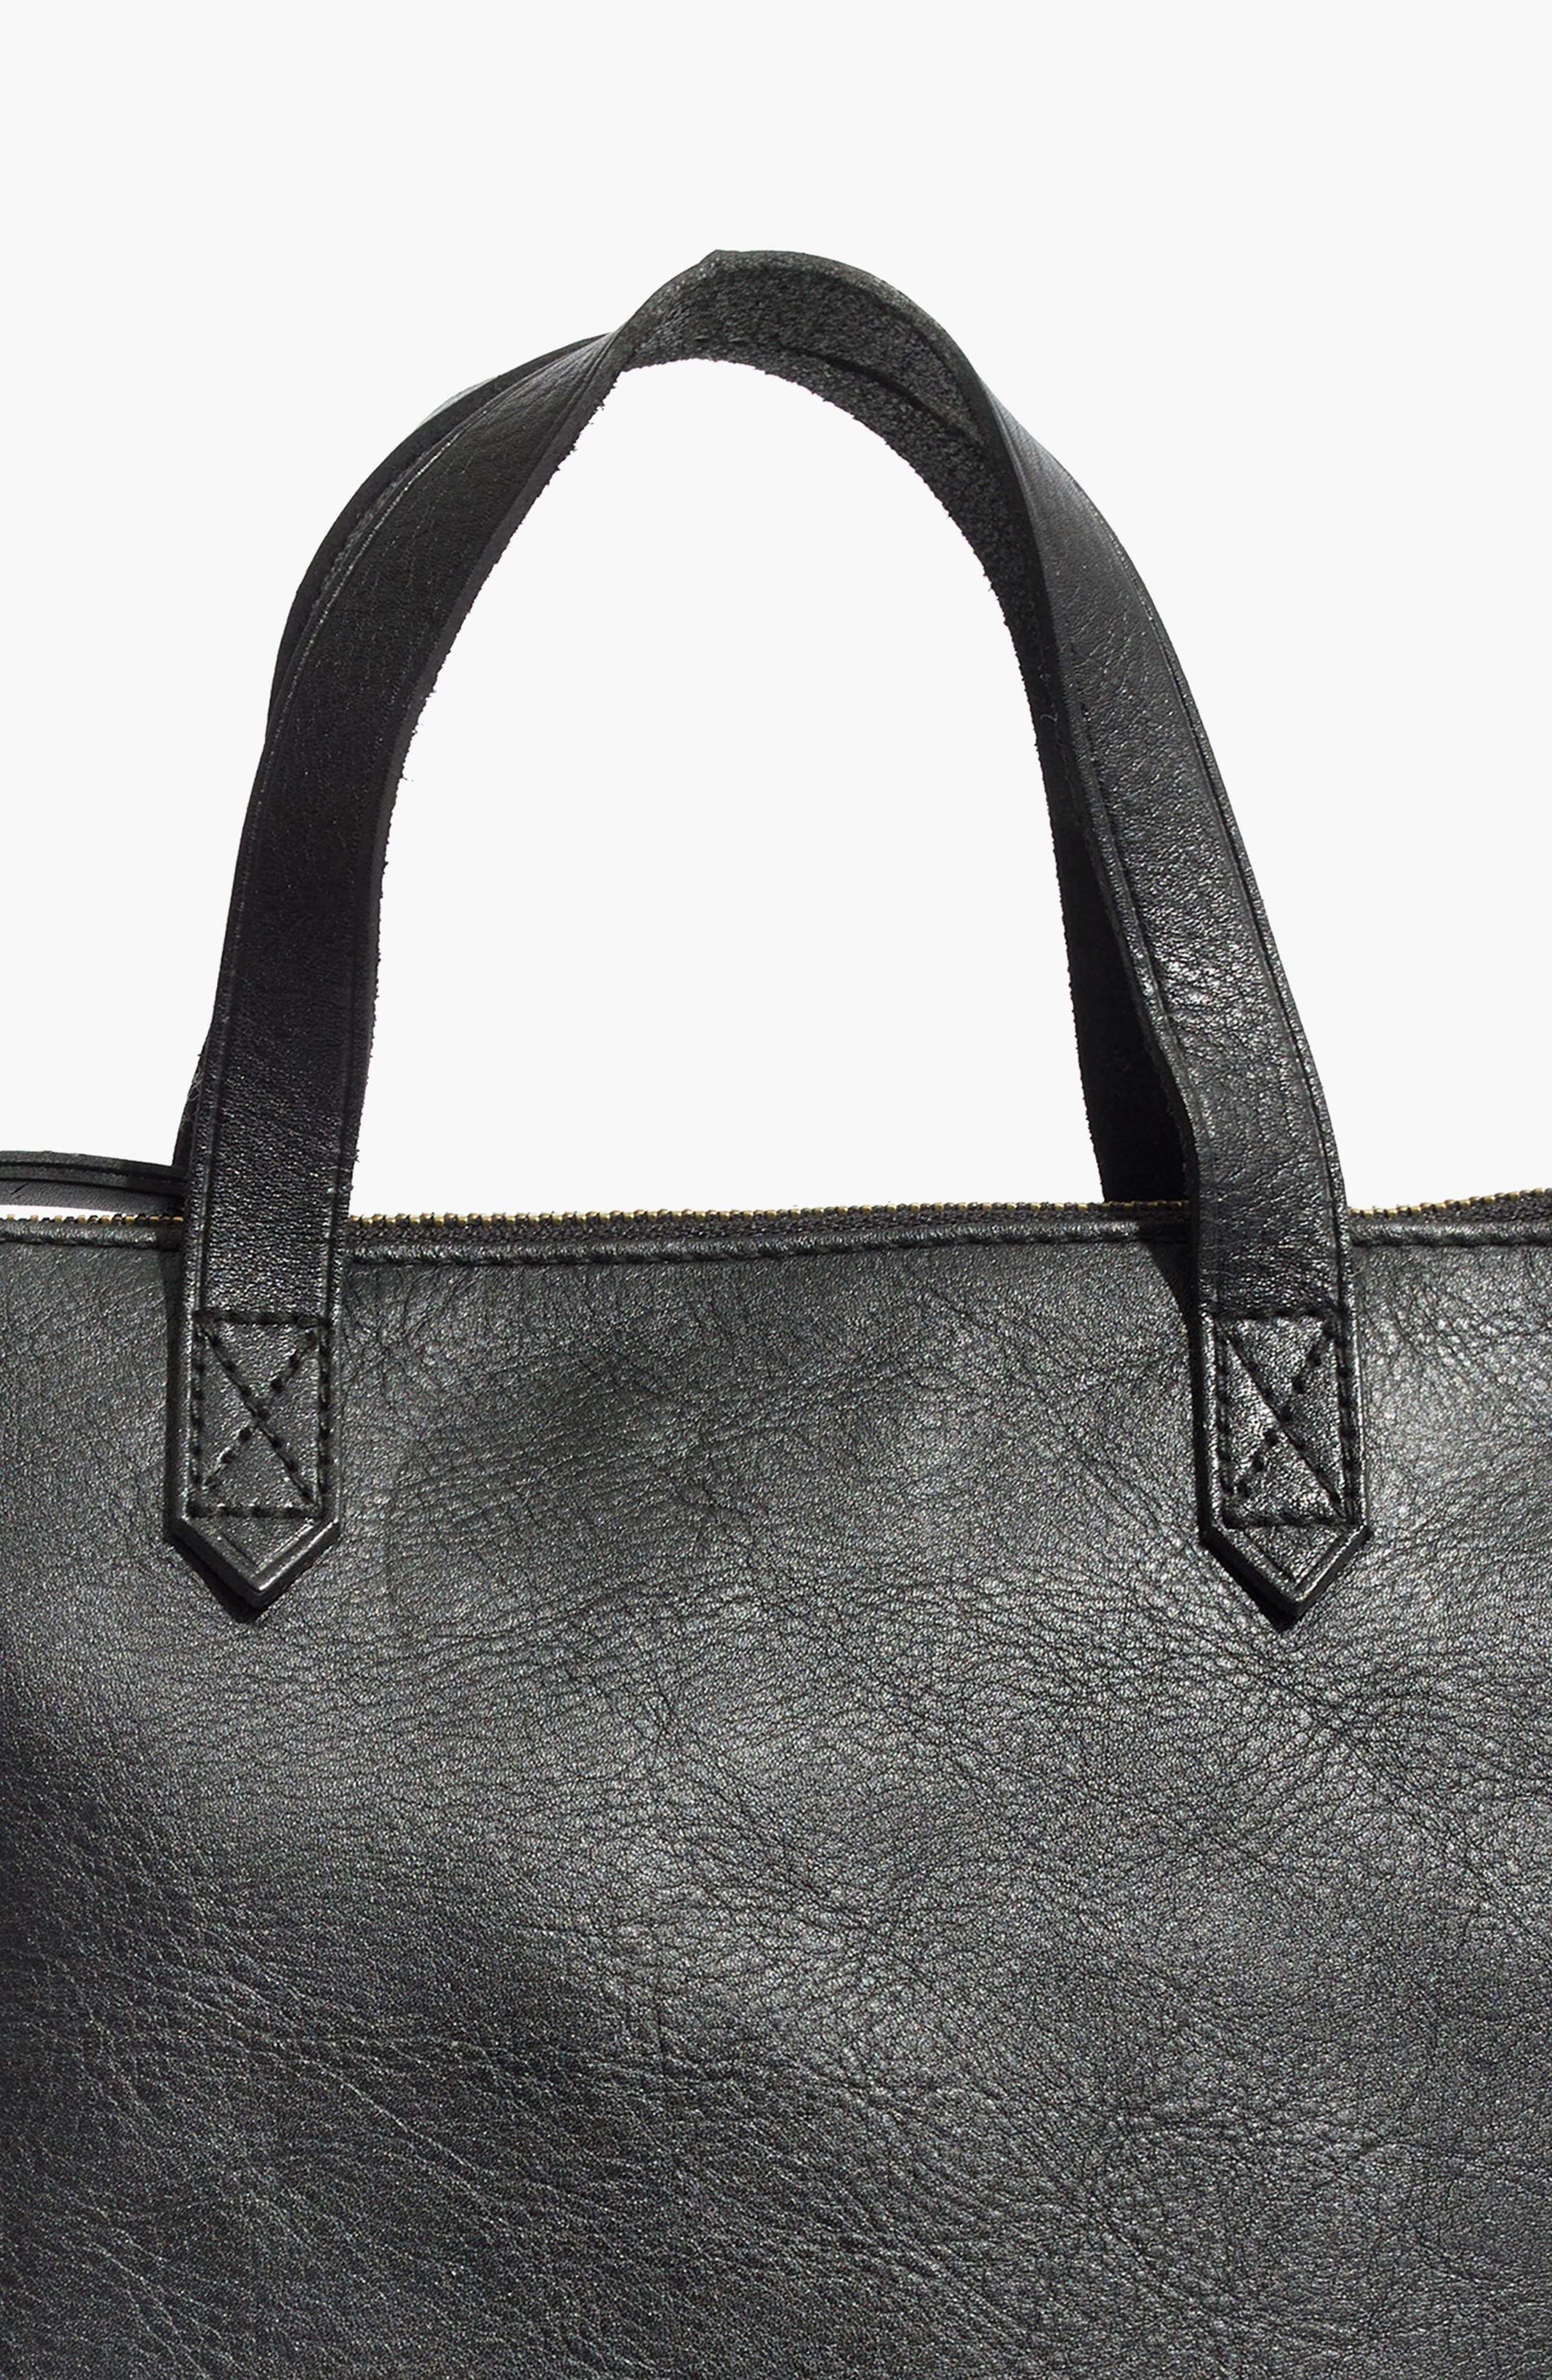 MADEWELL, Small Transport Leather Crossbody Tote, Alternate thumbnail 6, color, TRUE BLACK